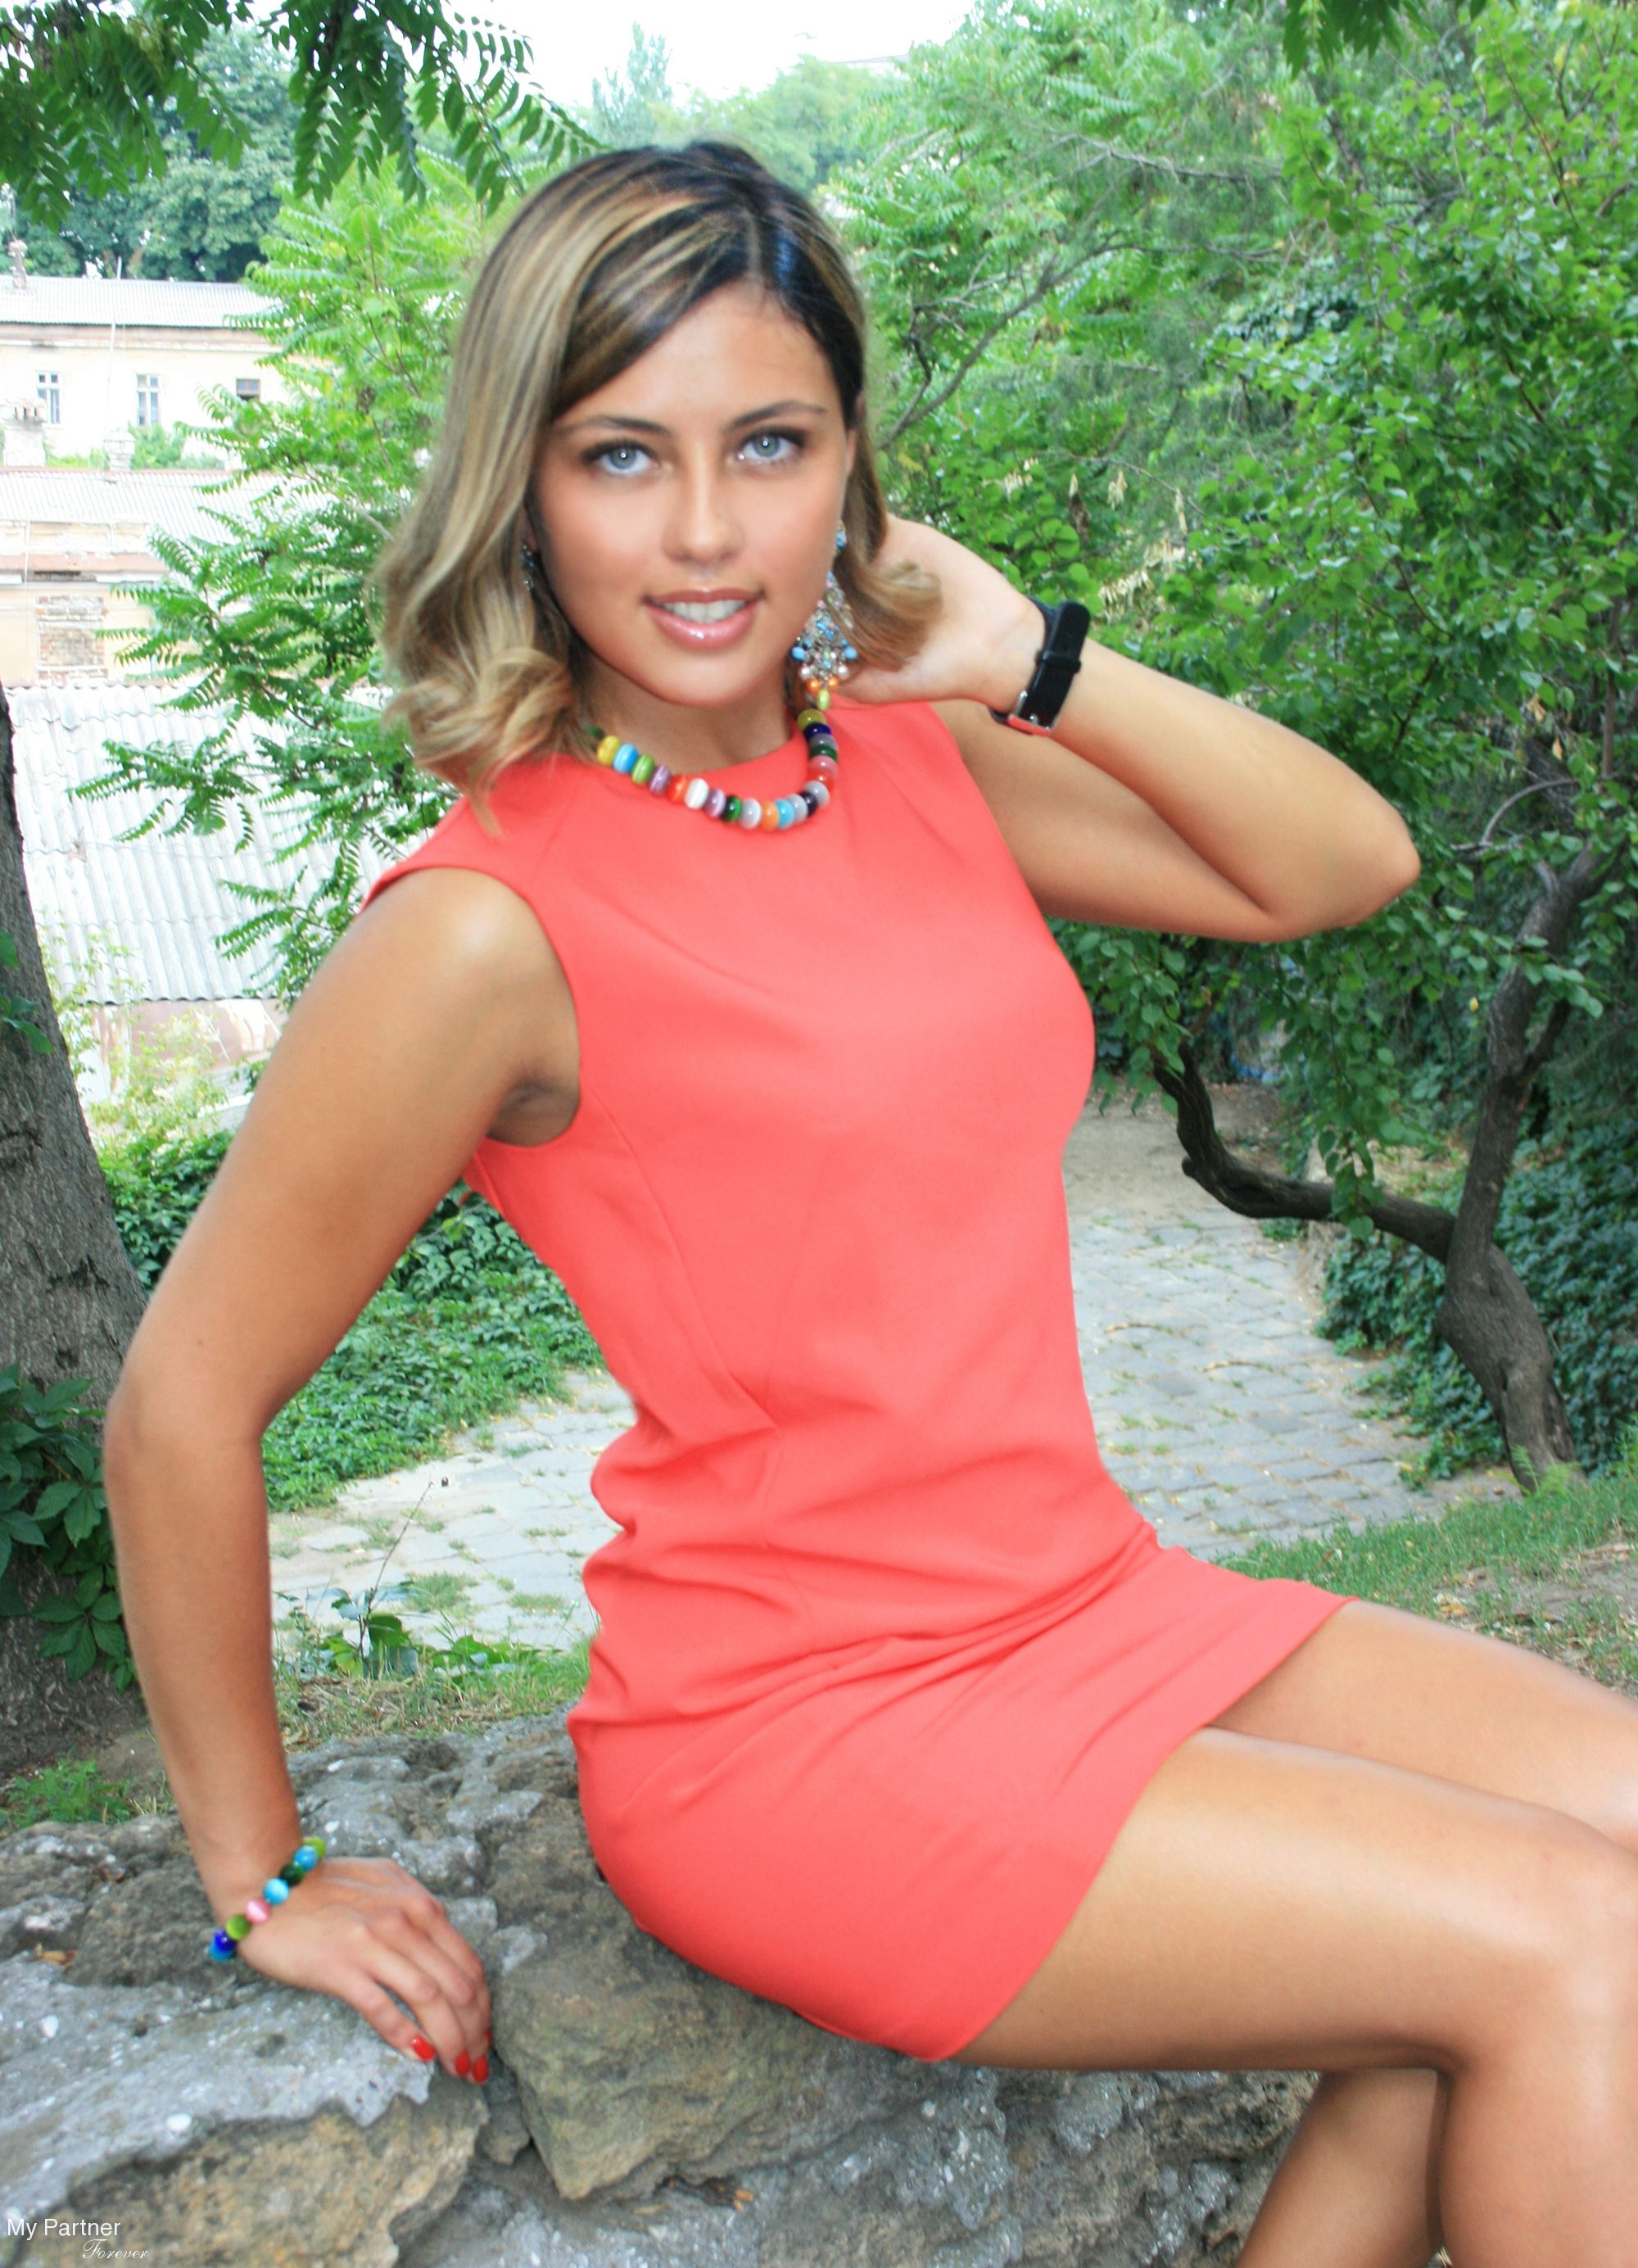 odessa ukraine dating scams International marriage agency to meet beautiful russian and ukrainian girls who are looking for a life partner from outside their country with the help of our dating site and matchmaking service, men from around the world find their charming bride in belarus, russia, ukraine and other cis countries.